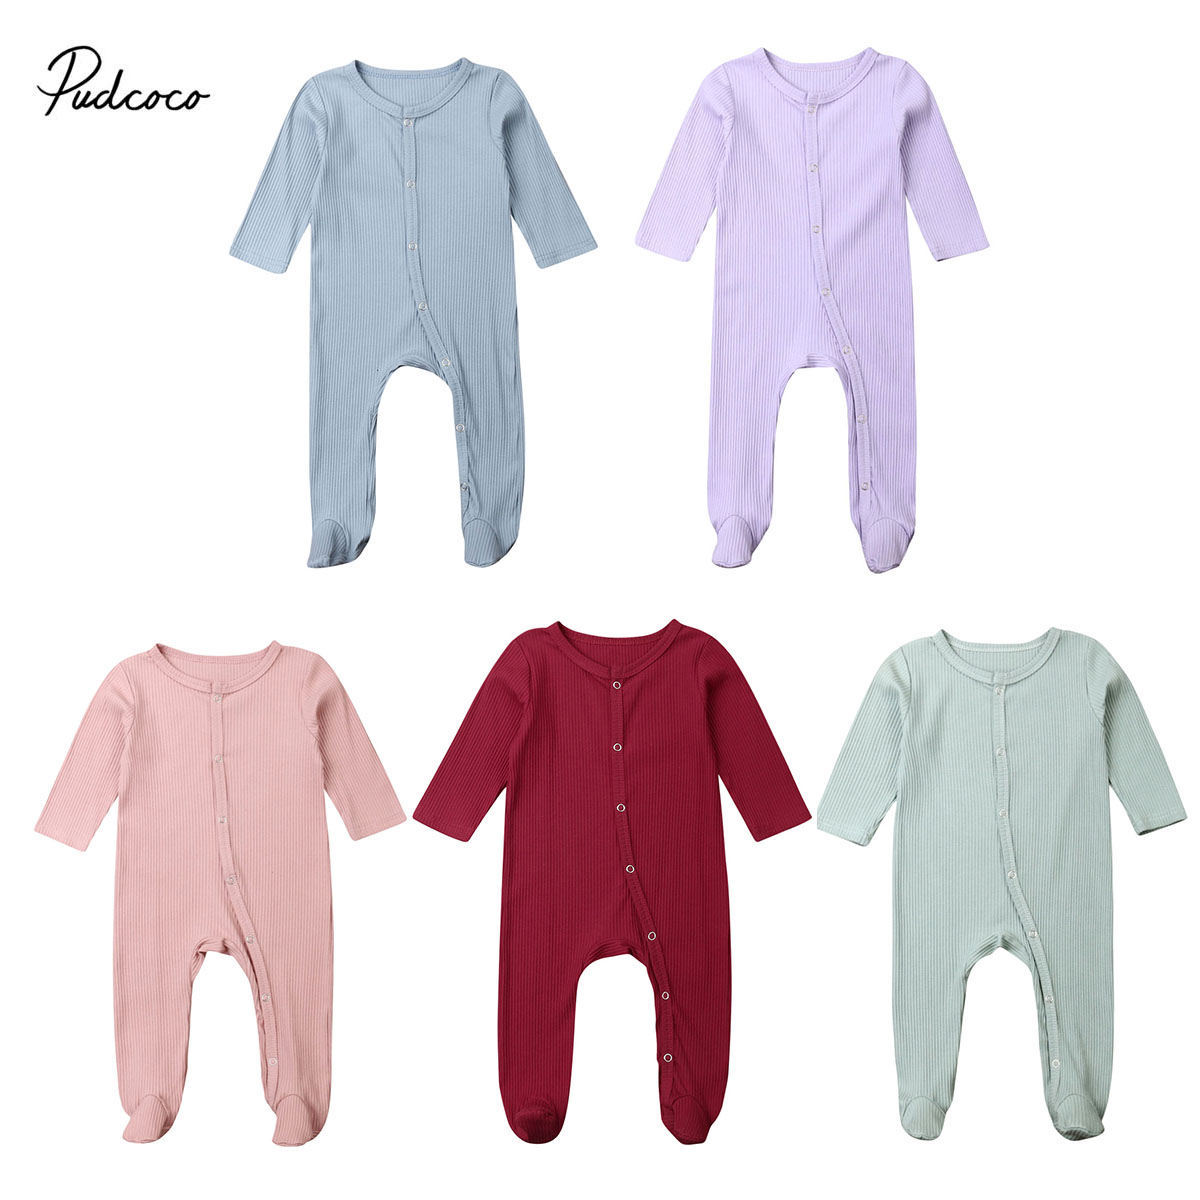 0-6M Newborn Infant Baby Boys Girls Long Sleeve Footies Solid Ribbed Jumpsuit Outfit Clothes Sunsuit Spring Autumn Clothing